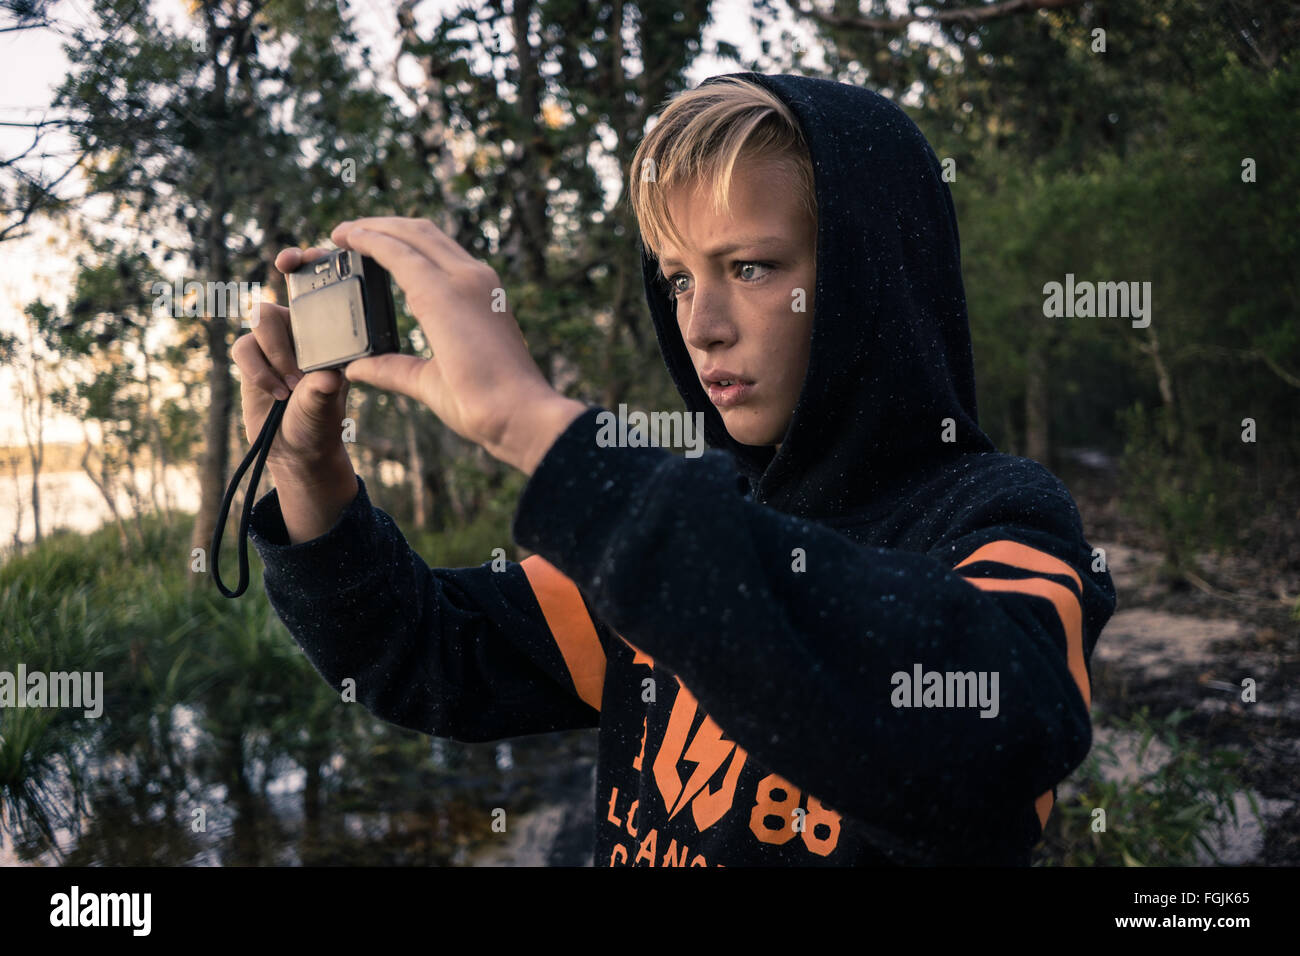 A boy taking a photo whilst on an adventure in the woods by the lake - Stock Image